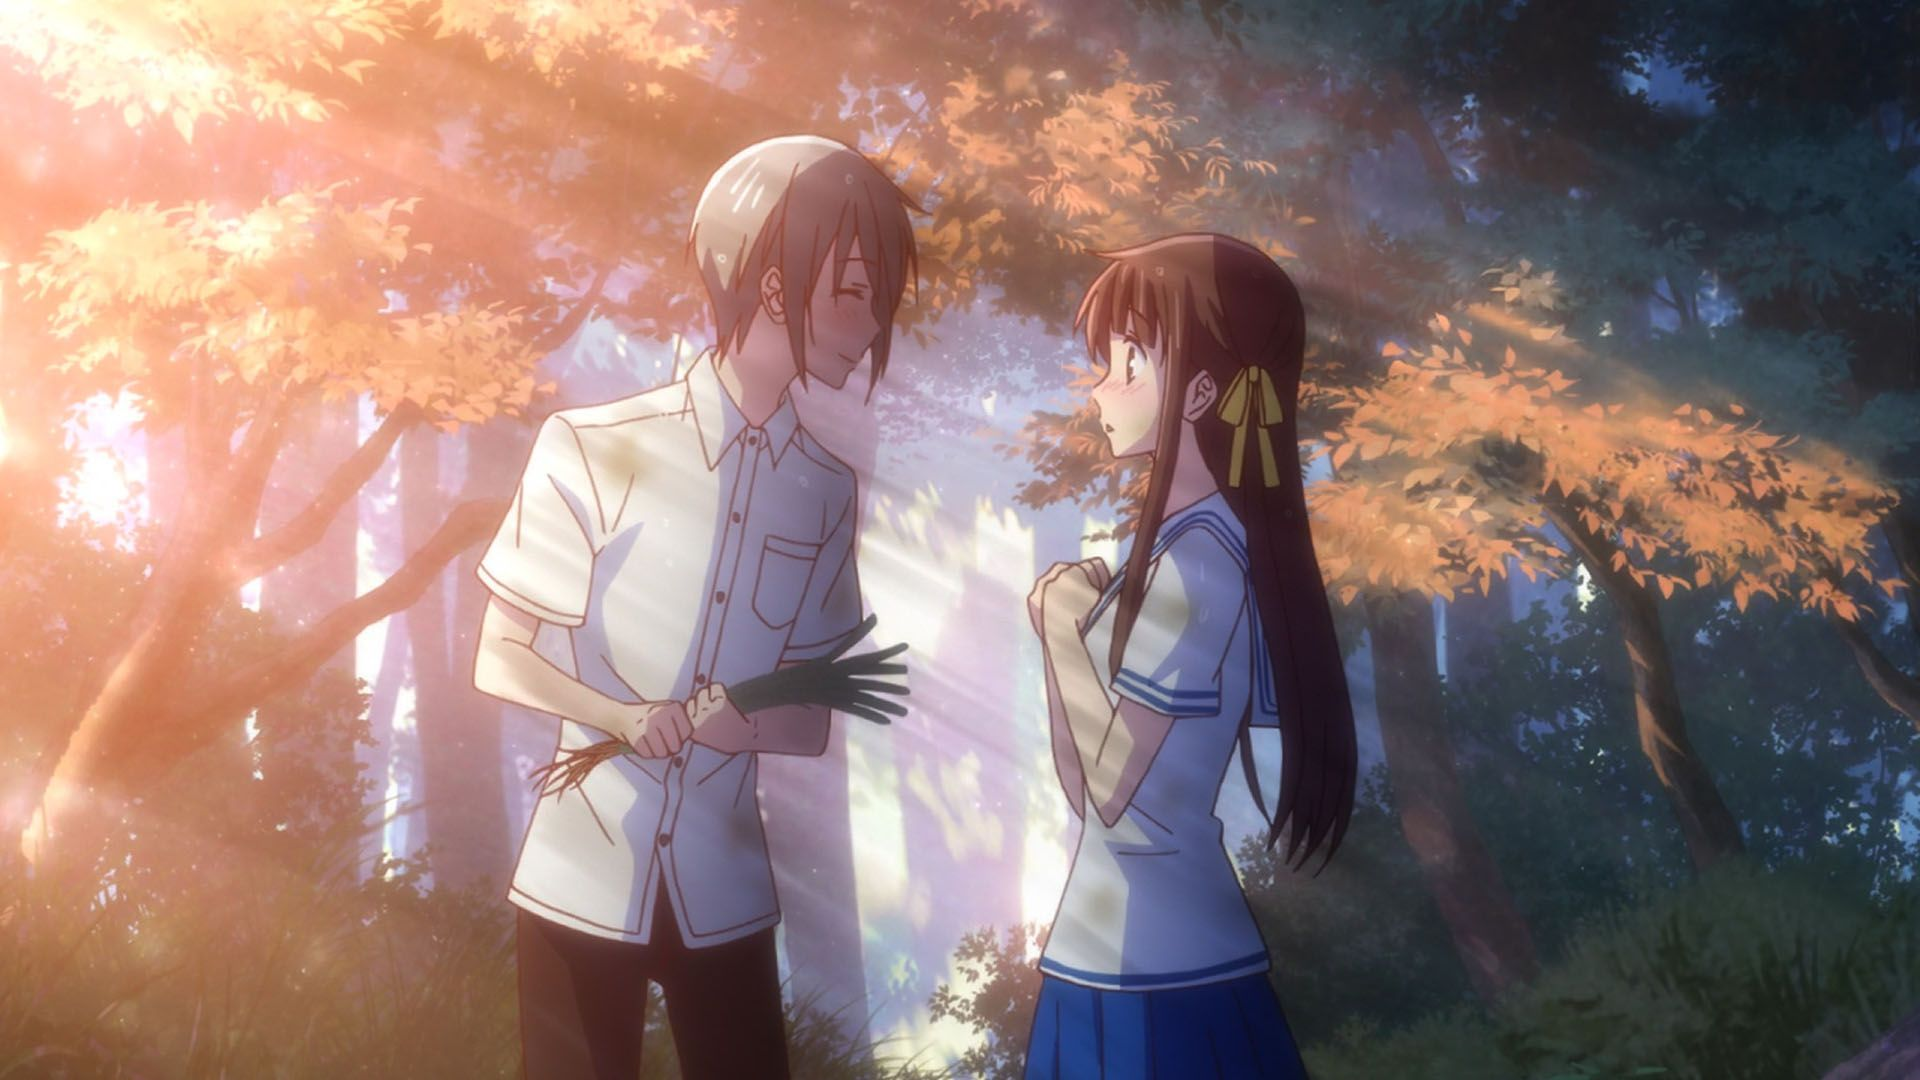 Fruits Basket - Best Fantasy Anime You Need To Watch